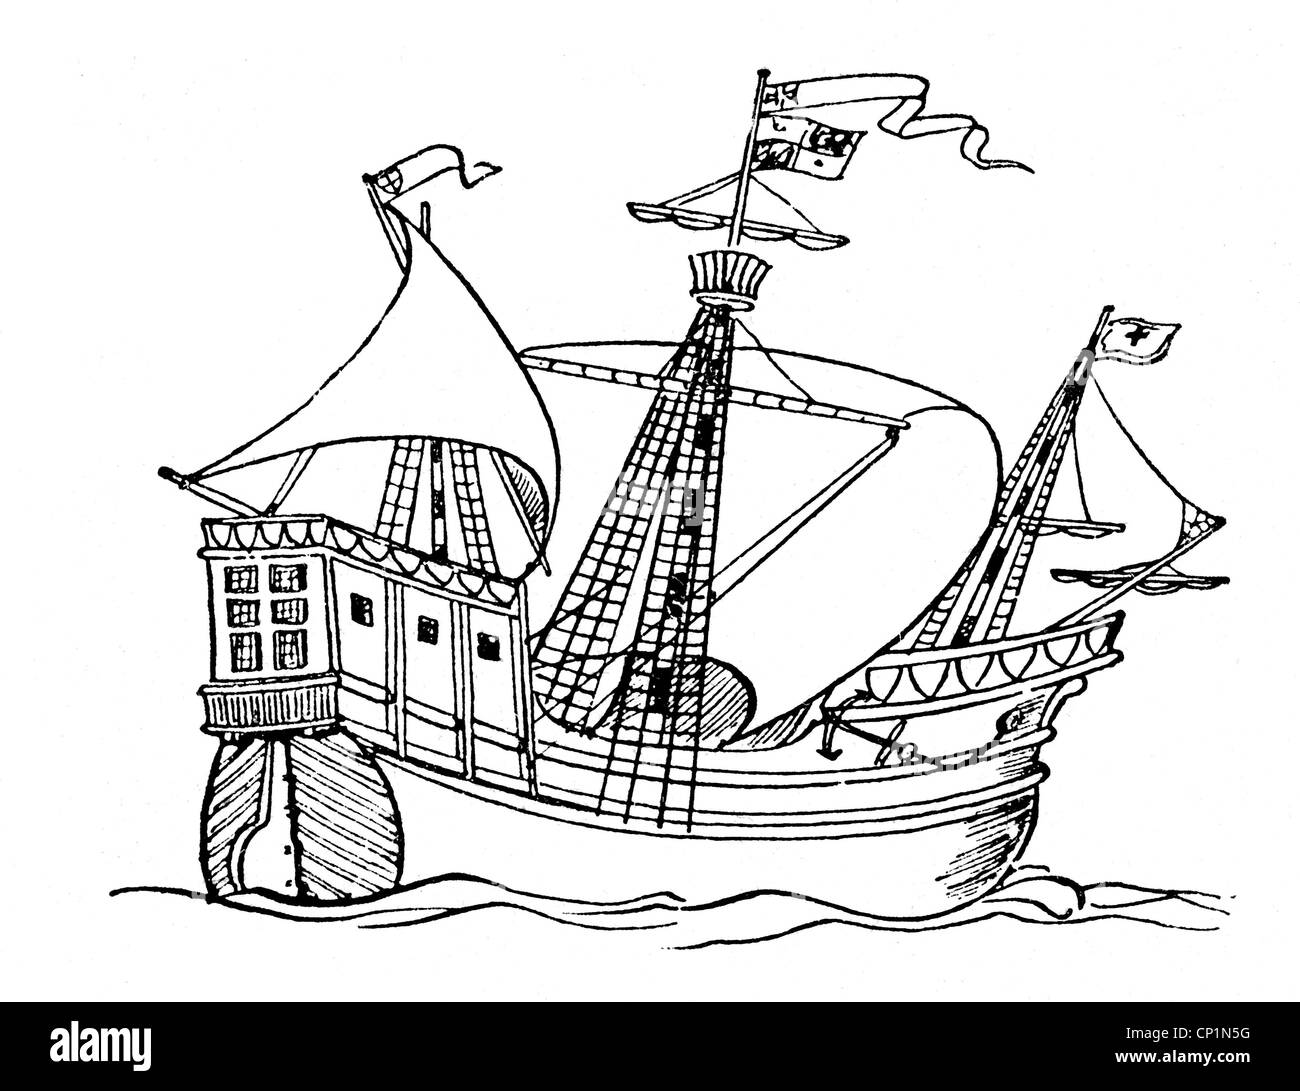 transport / transportation, navigation, sailing ships, caravel, caravel from the late 15th century, wood engraving, - Stock Image